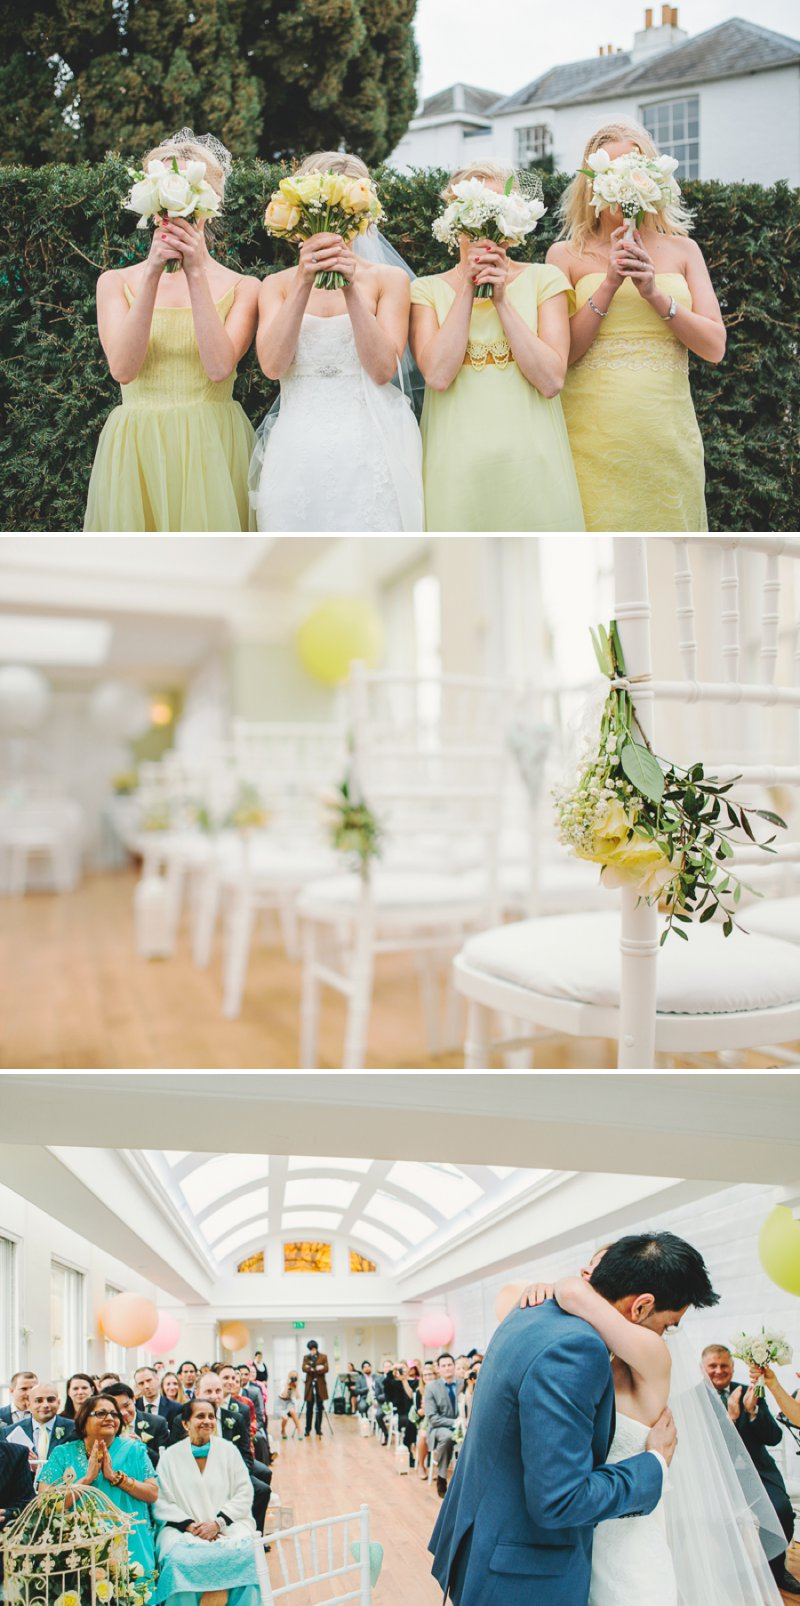 Yellow Themed Vintage Inspired Easter Wedding At Pembroke Lodge Richmond Park With Bride In Balira By Pronovias And Burberry Sandals With Groom In Blue Reiss Suit And Bridesmaids In Yellow Vintage Dresses With Images By Shell De Mar 1 A Spring Heaven.